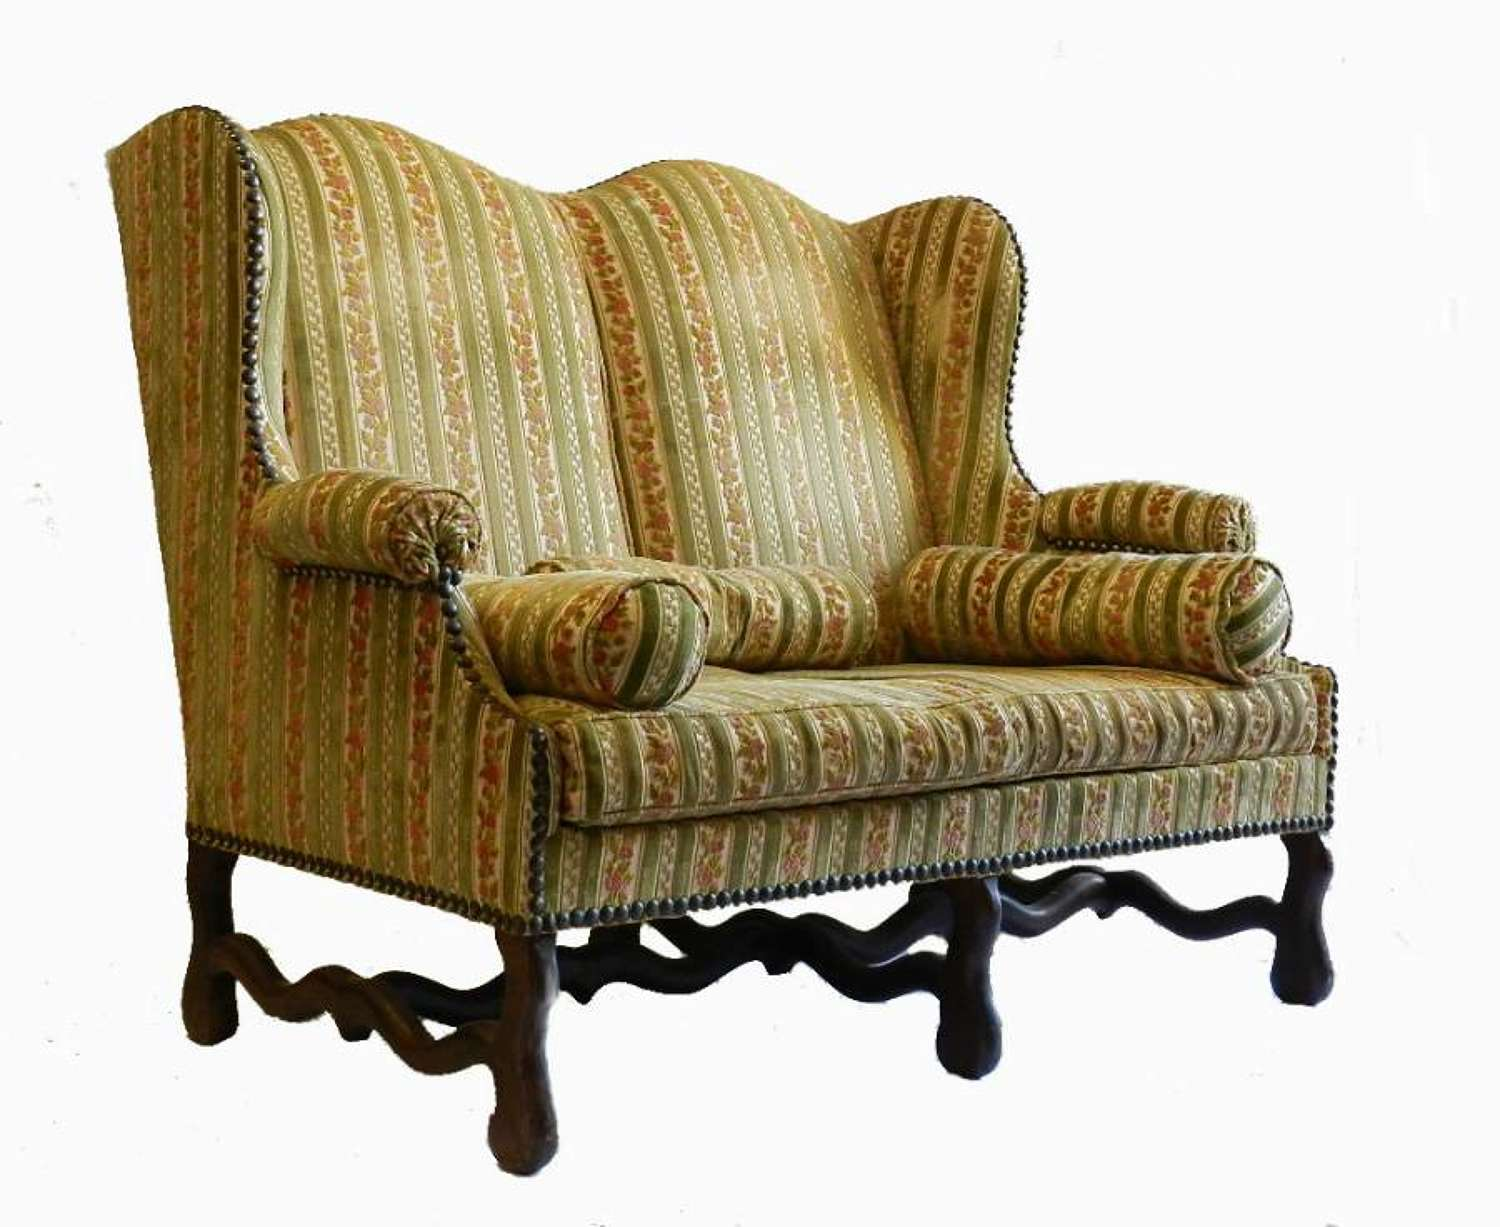 French Os de Mouton Sofa Wing Chair can be recovered